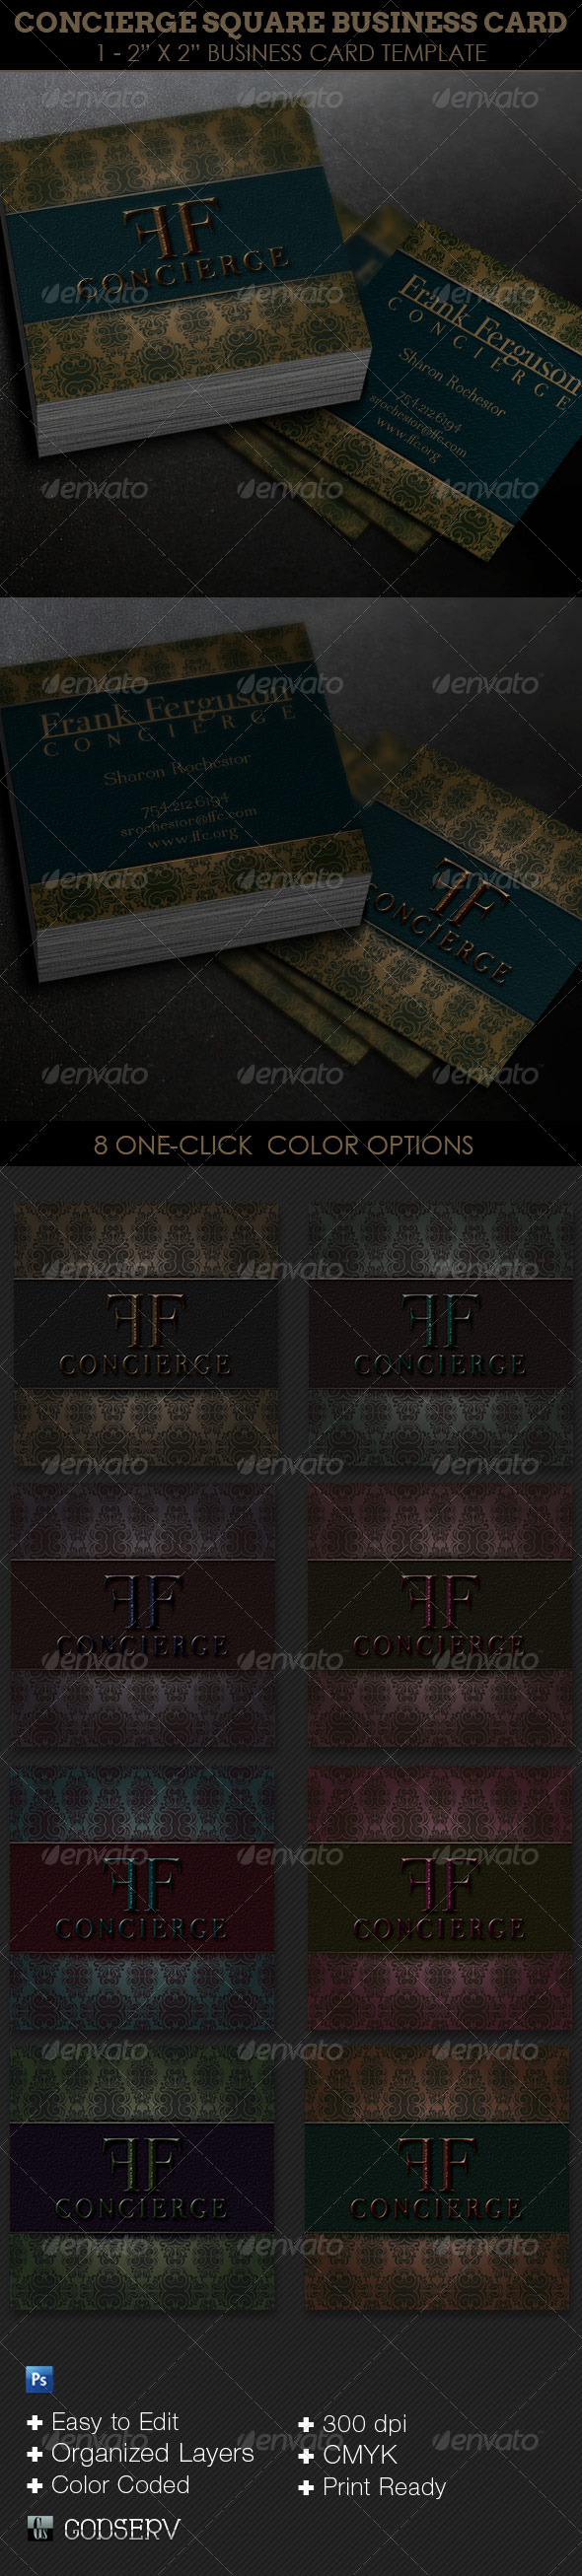 GraphicRiver Concierge Square Business Card Template 6185341